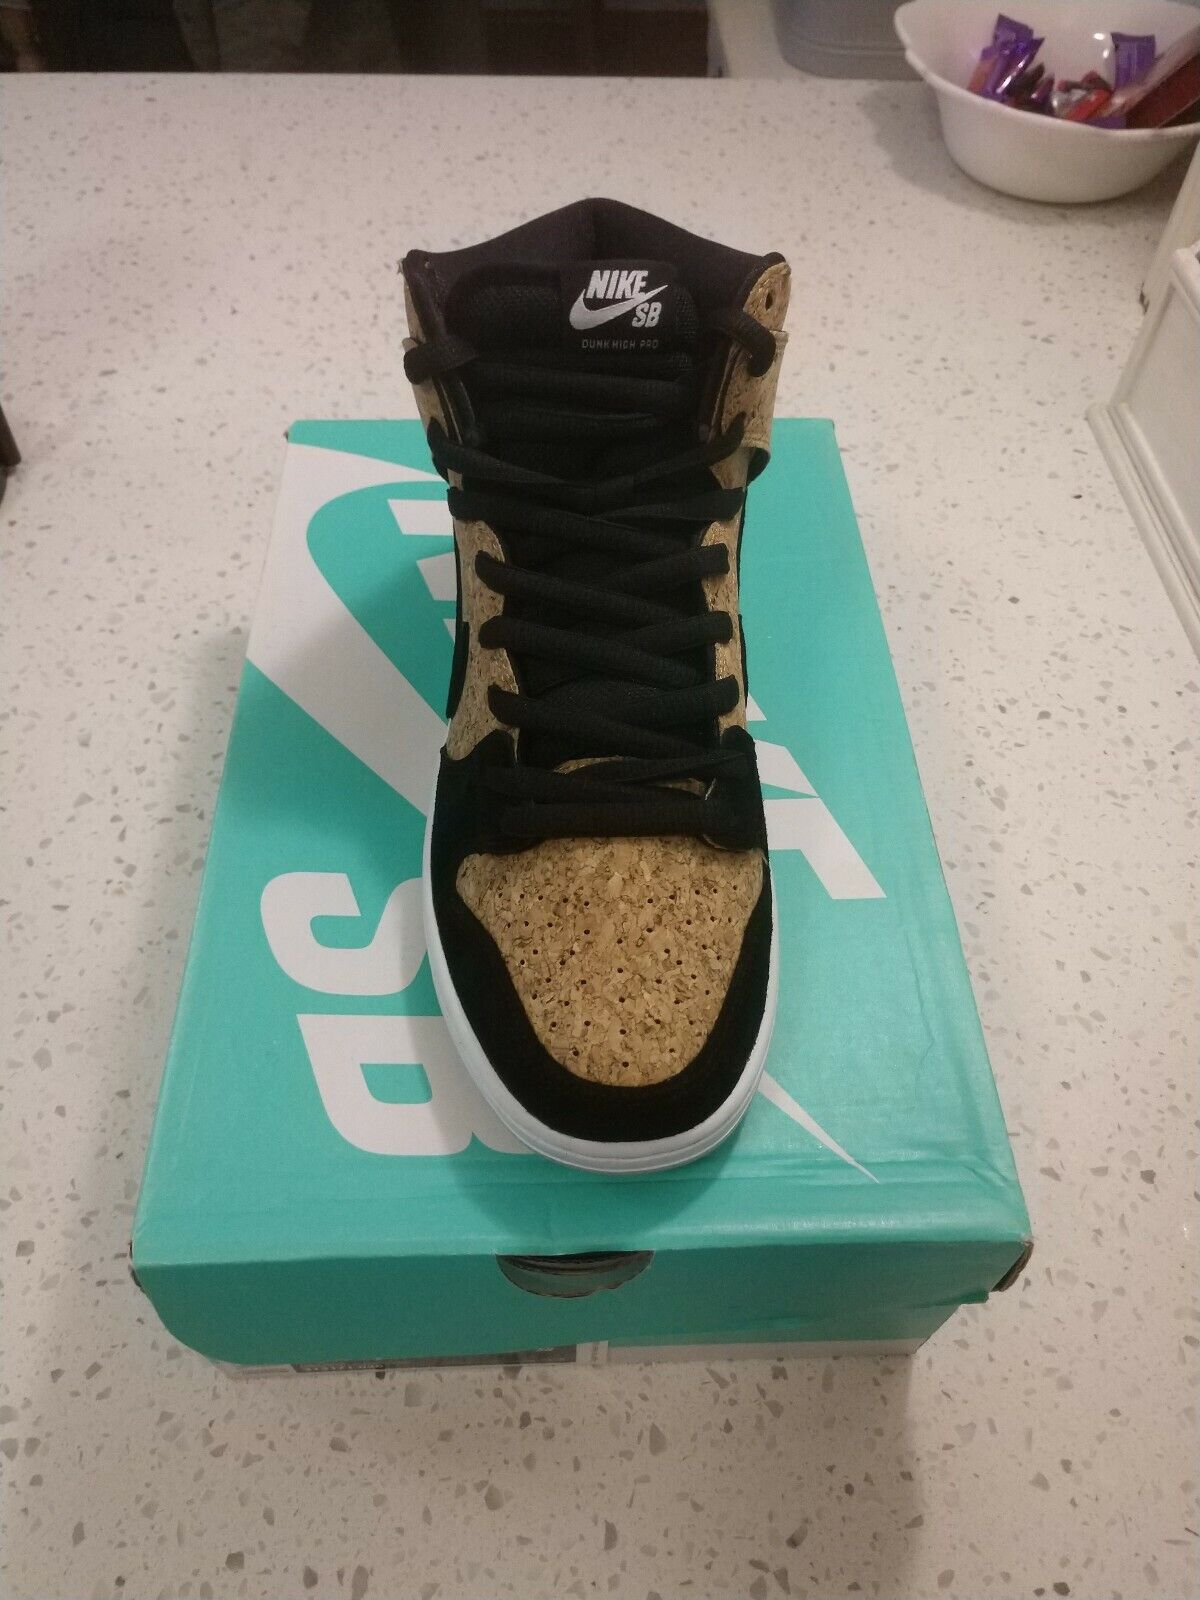 2c2de7176c Nike SB Dunk High And Black Suede. New In Box Cork Pro. ncetbs7657-Athletic  Shoes